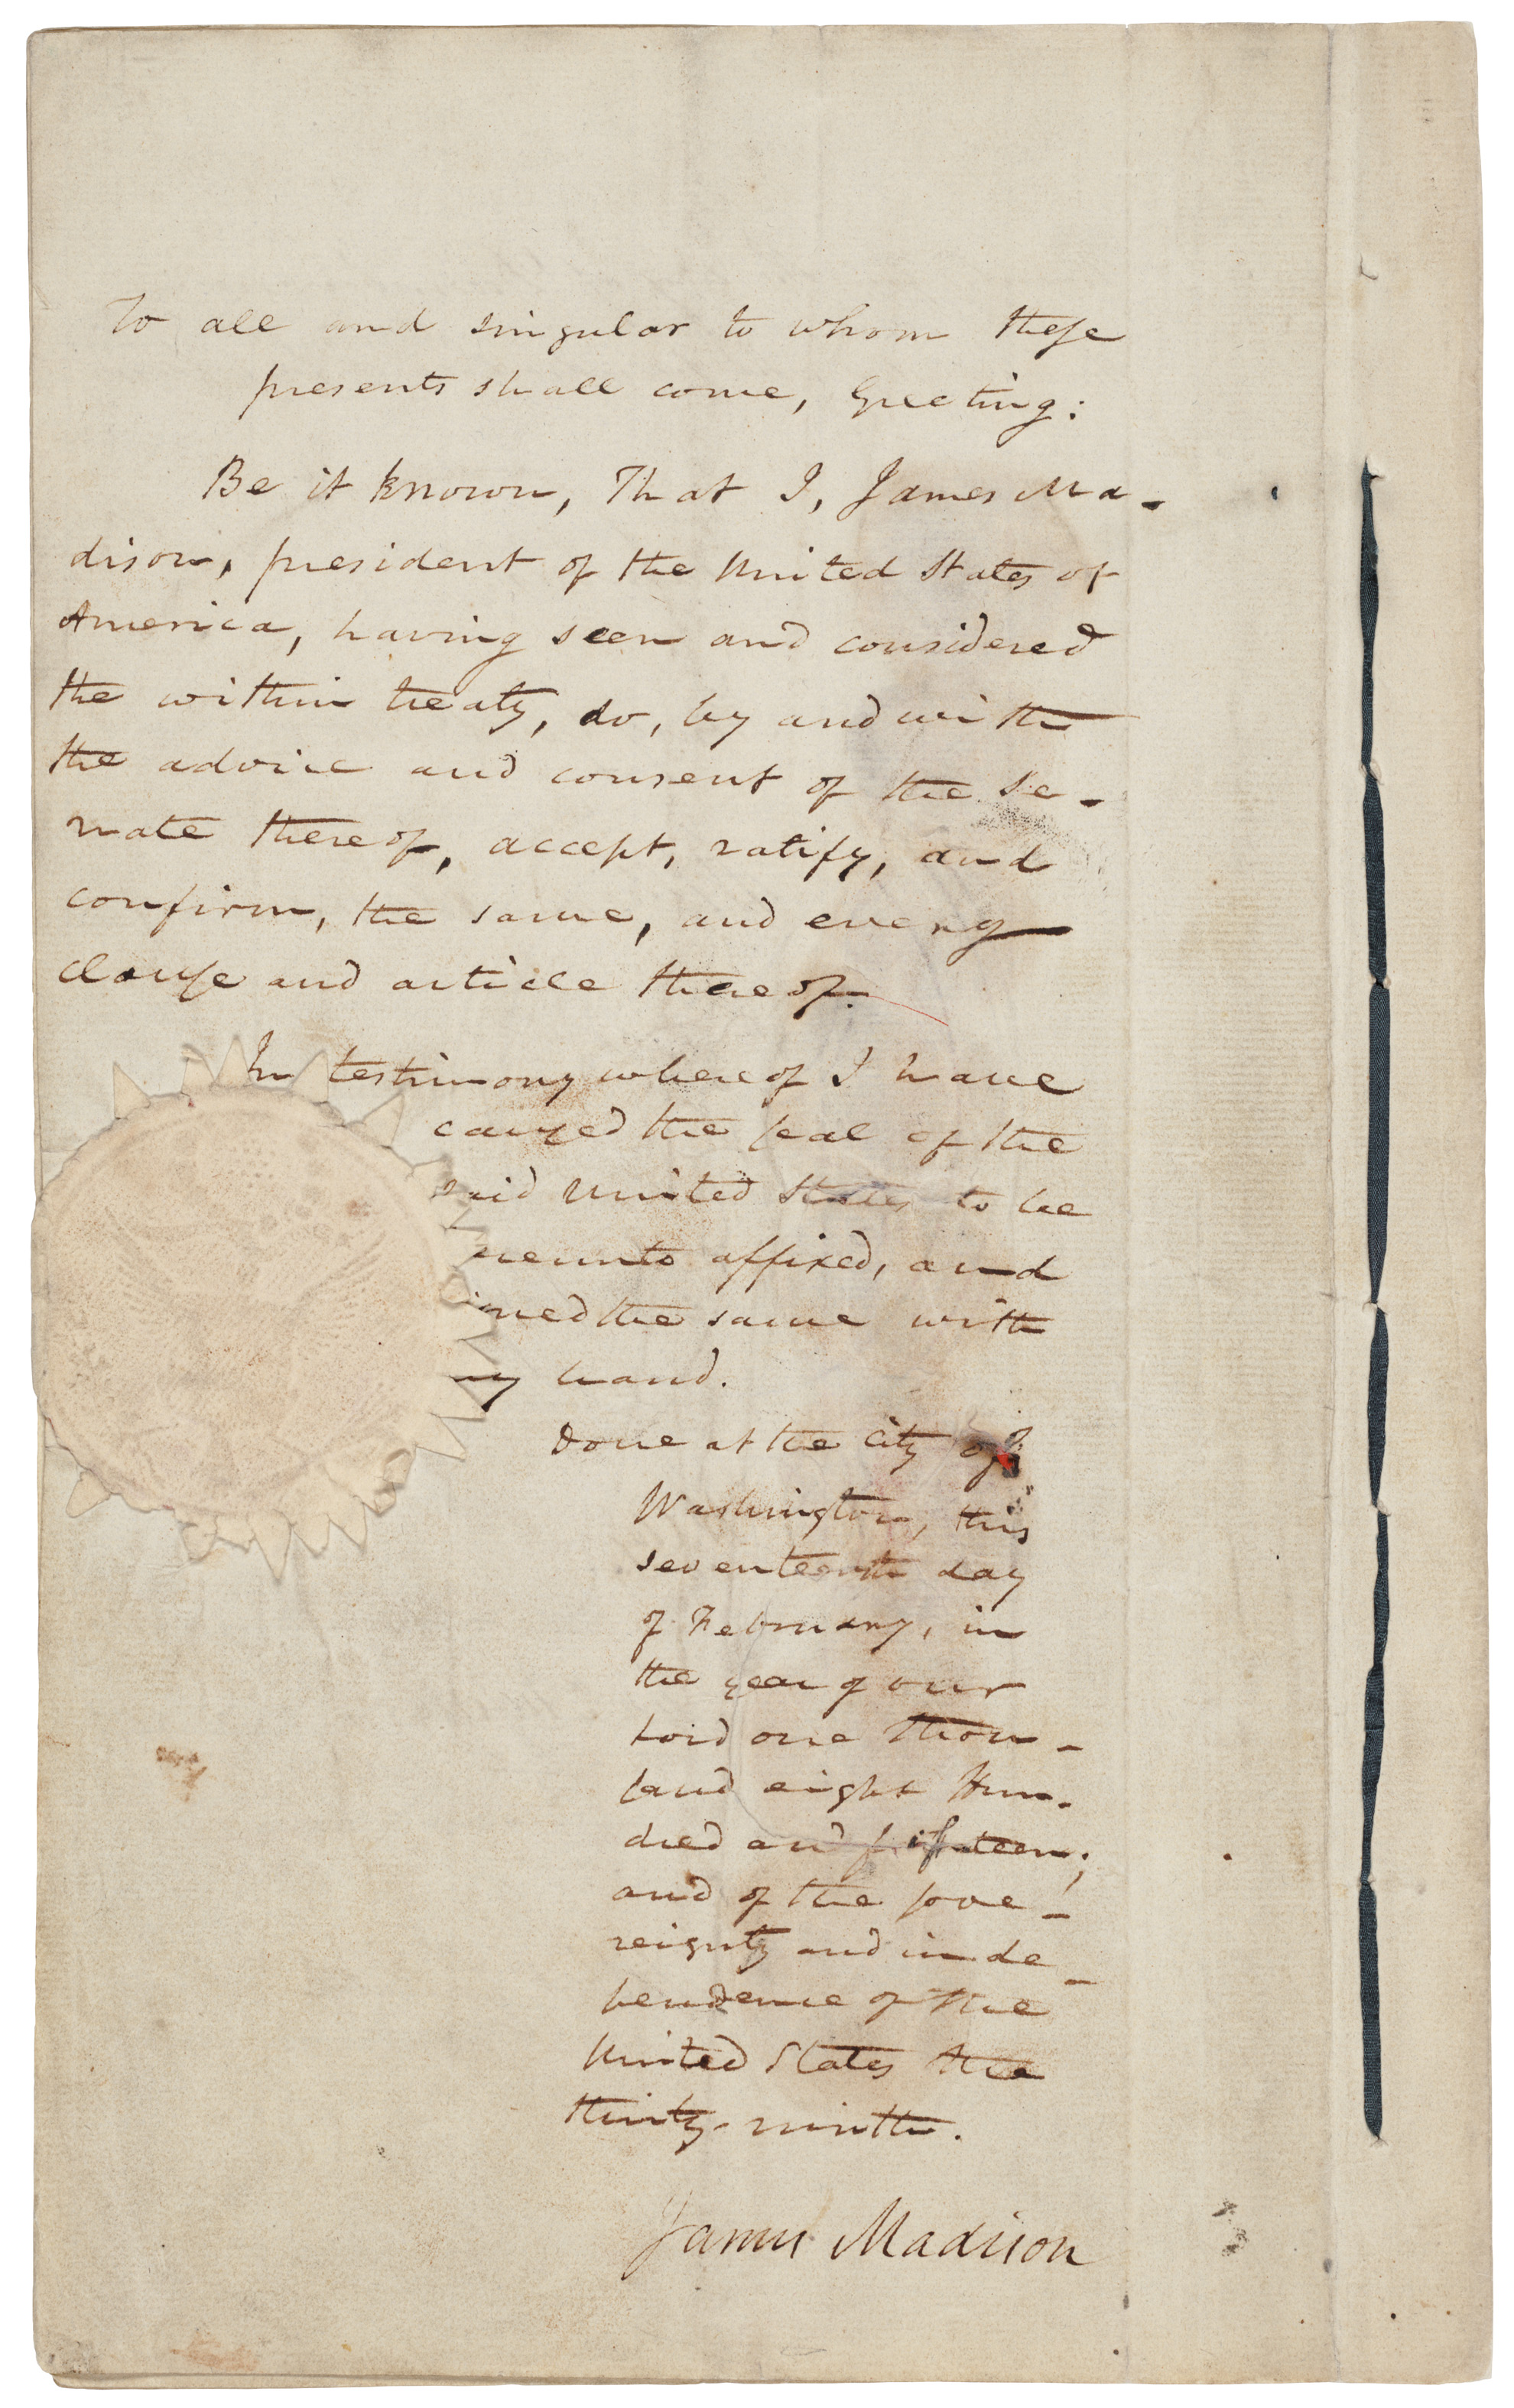 Treaty of Ghent 1814, original copy, first and last three page (President Madison's ratification)